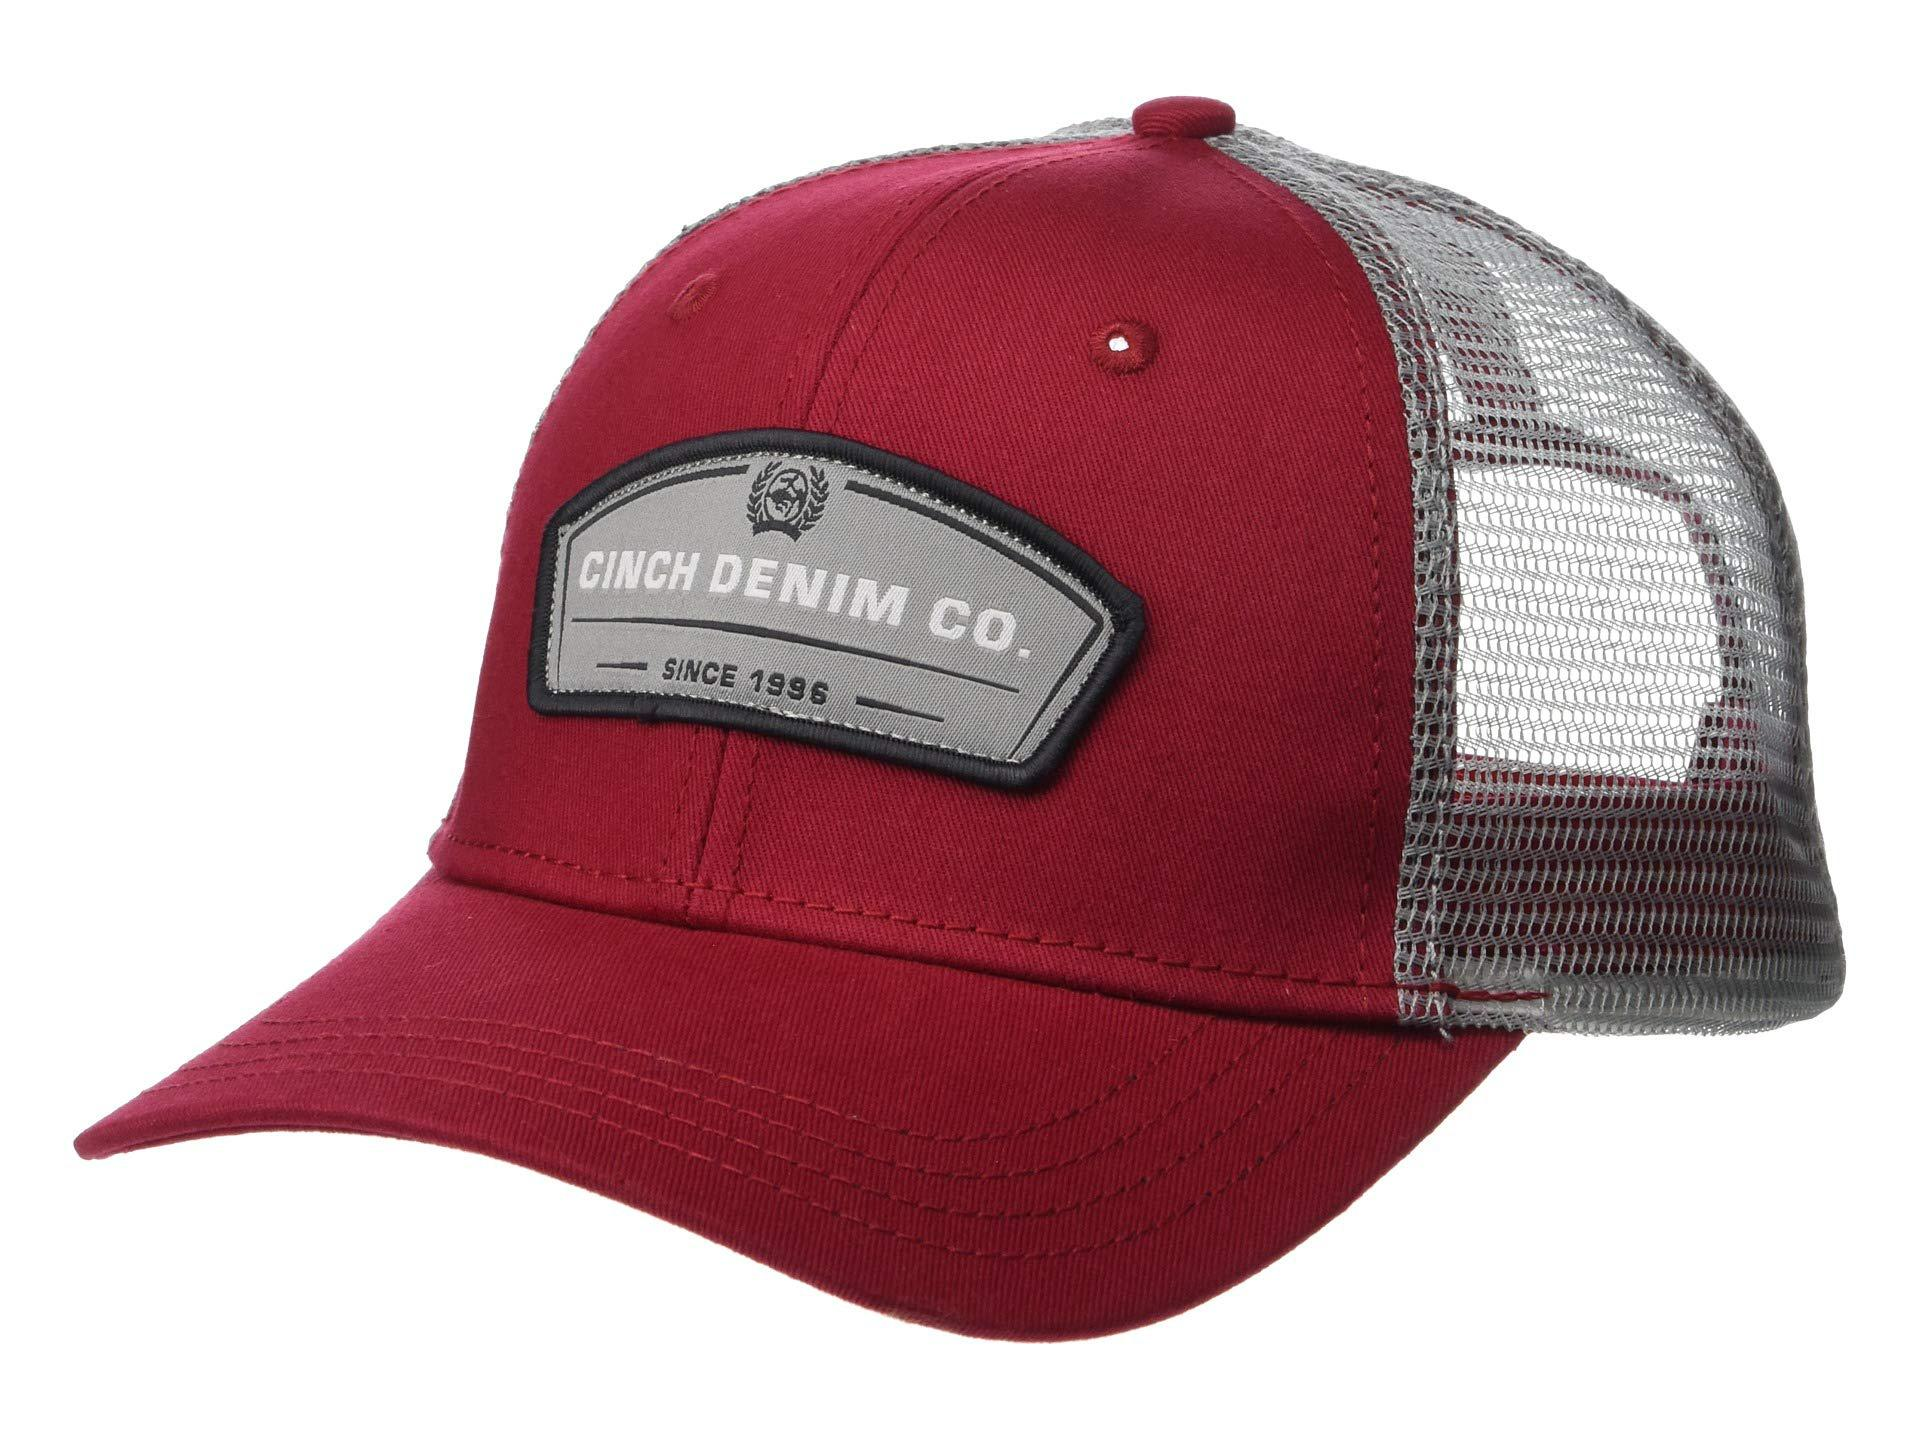 Lyst - Cinch Trucker Cap (burgundy) Caps in Red for Men c5459fabb5a9